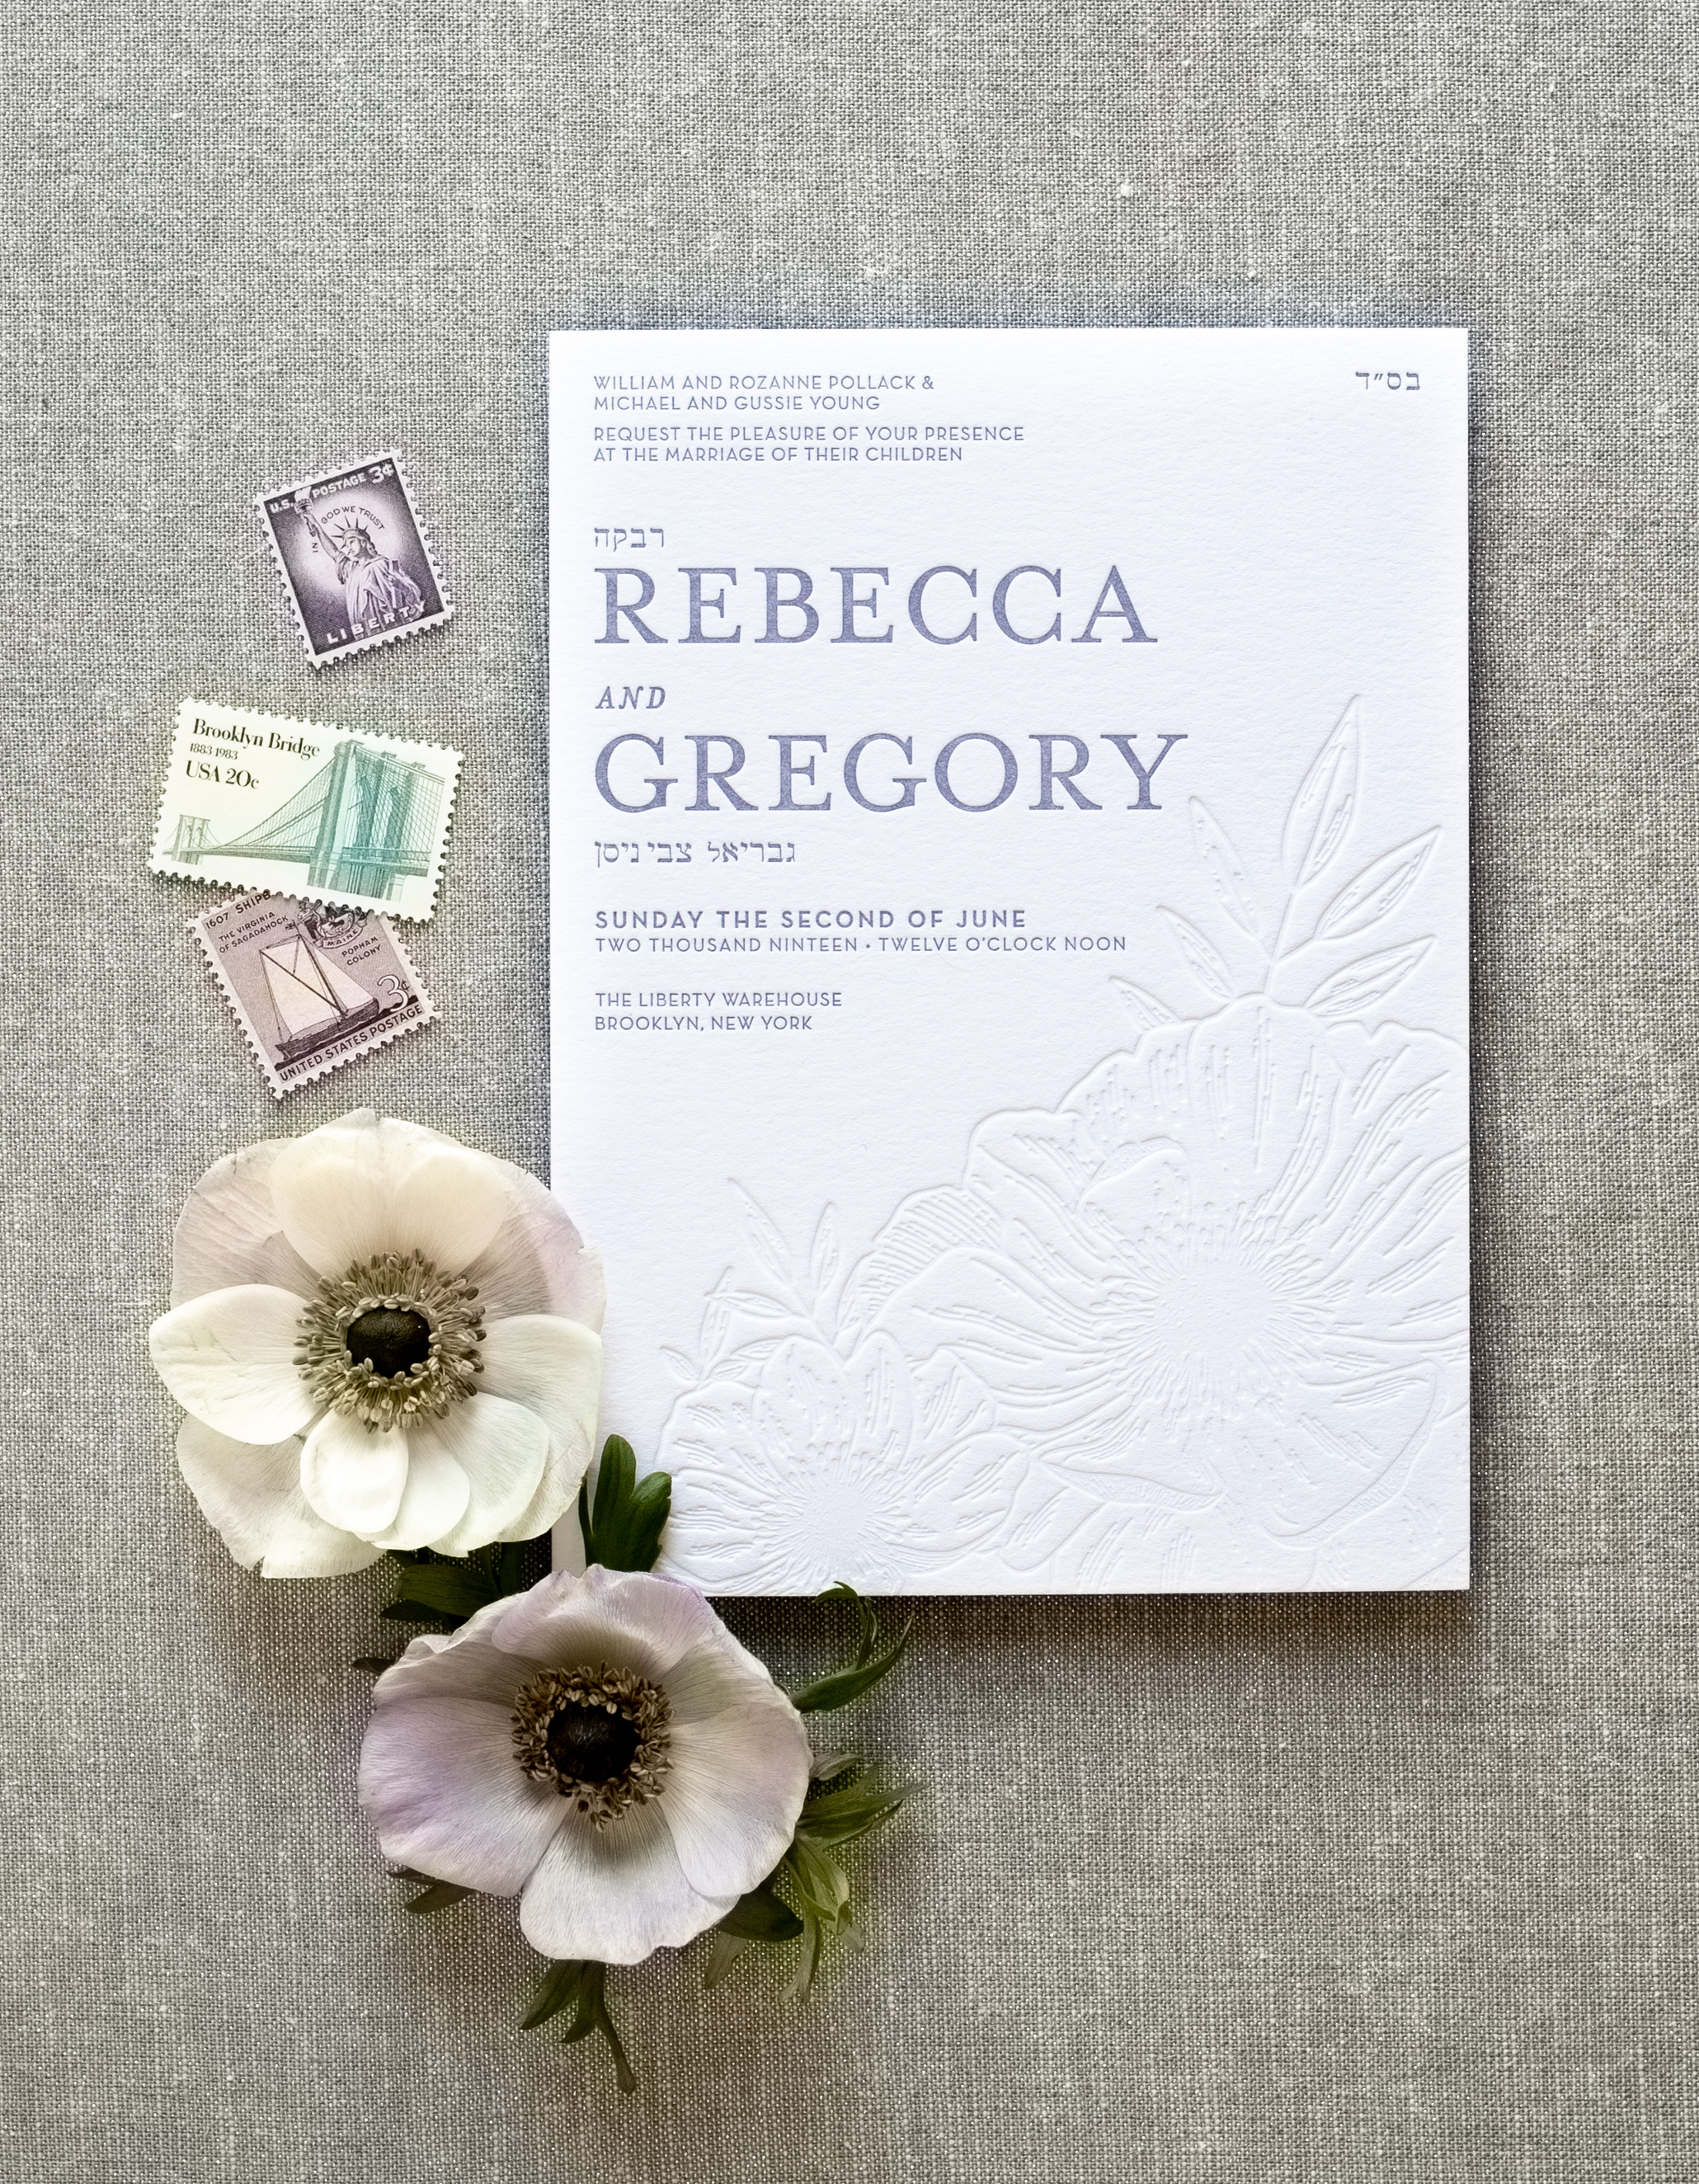 modern unique cool wedding invitations, custom designed and letterpress printed, inspired by flowers and nature, anemone illustration, blind letterpress